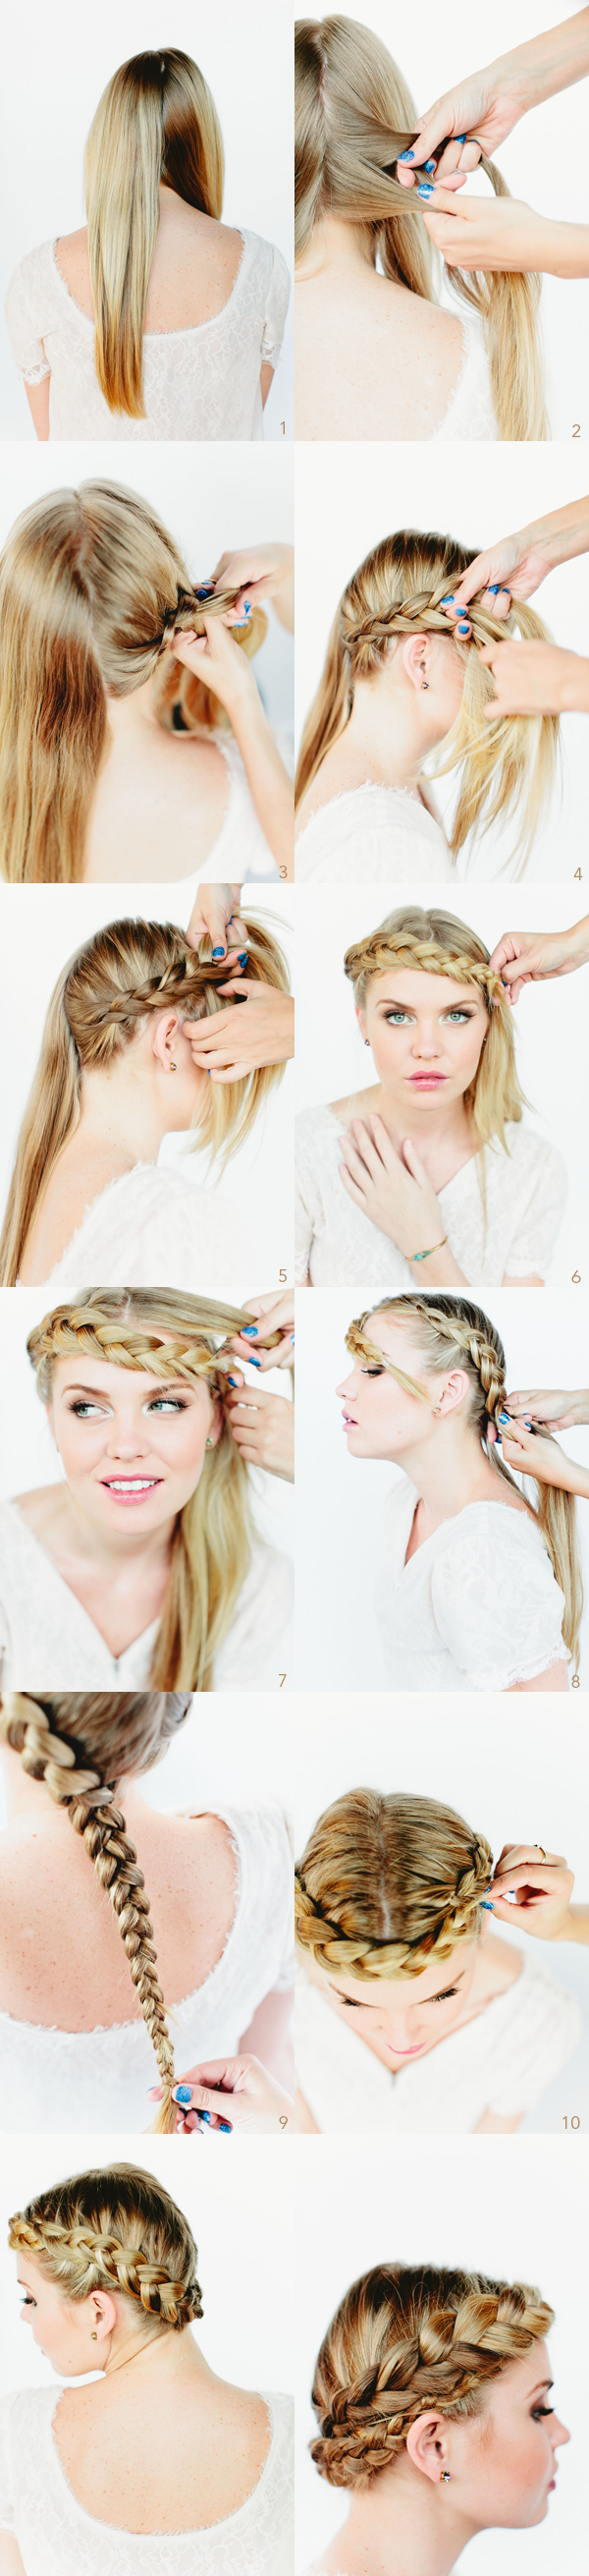 Beautiful tutorial for braided crown hairstyles